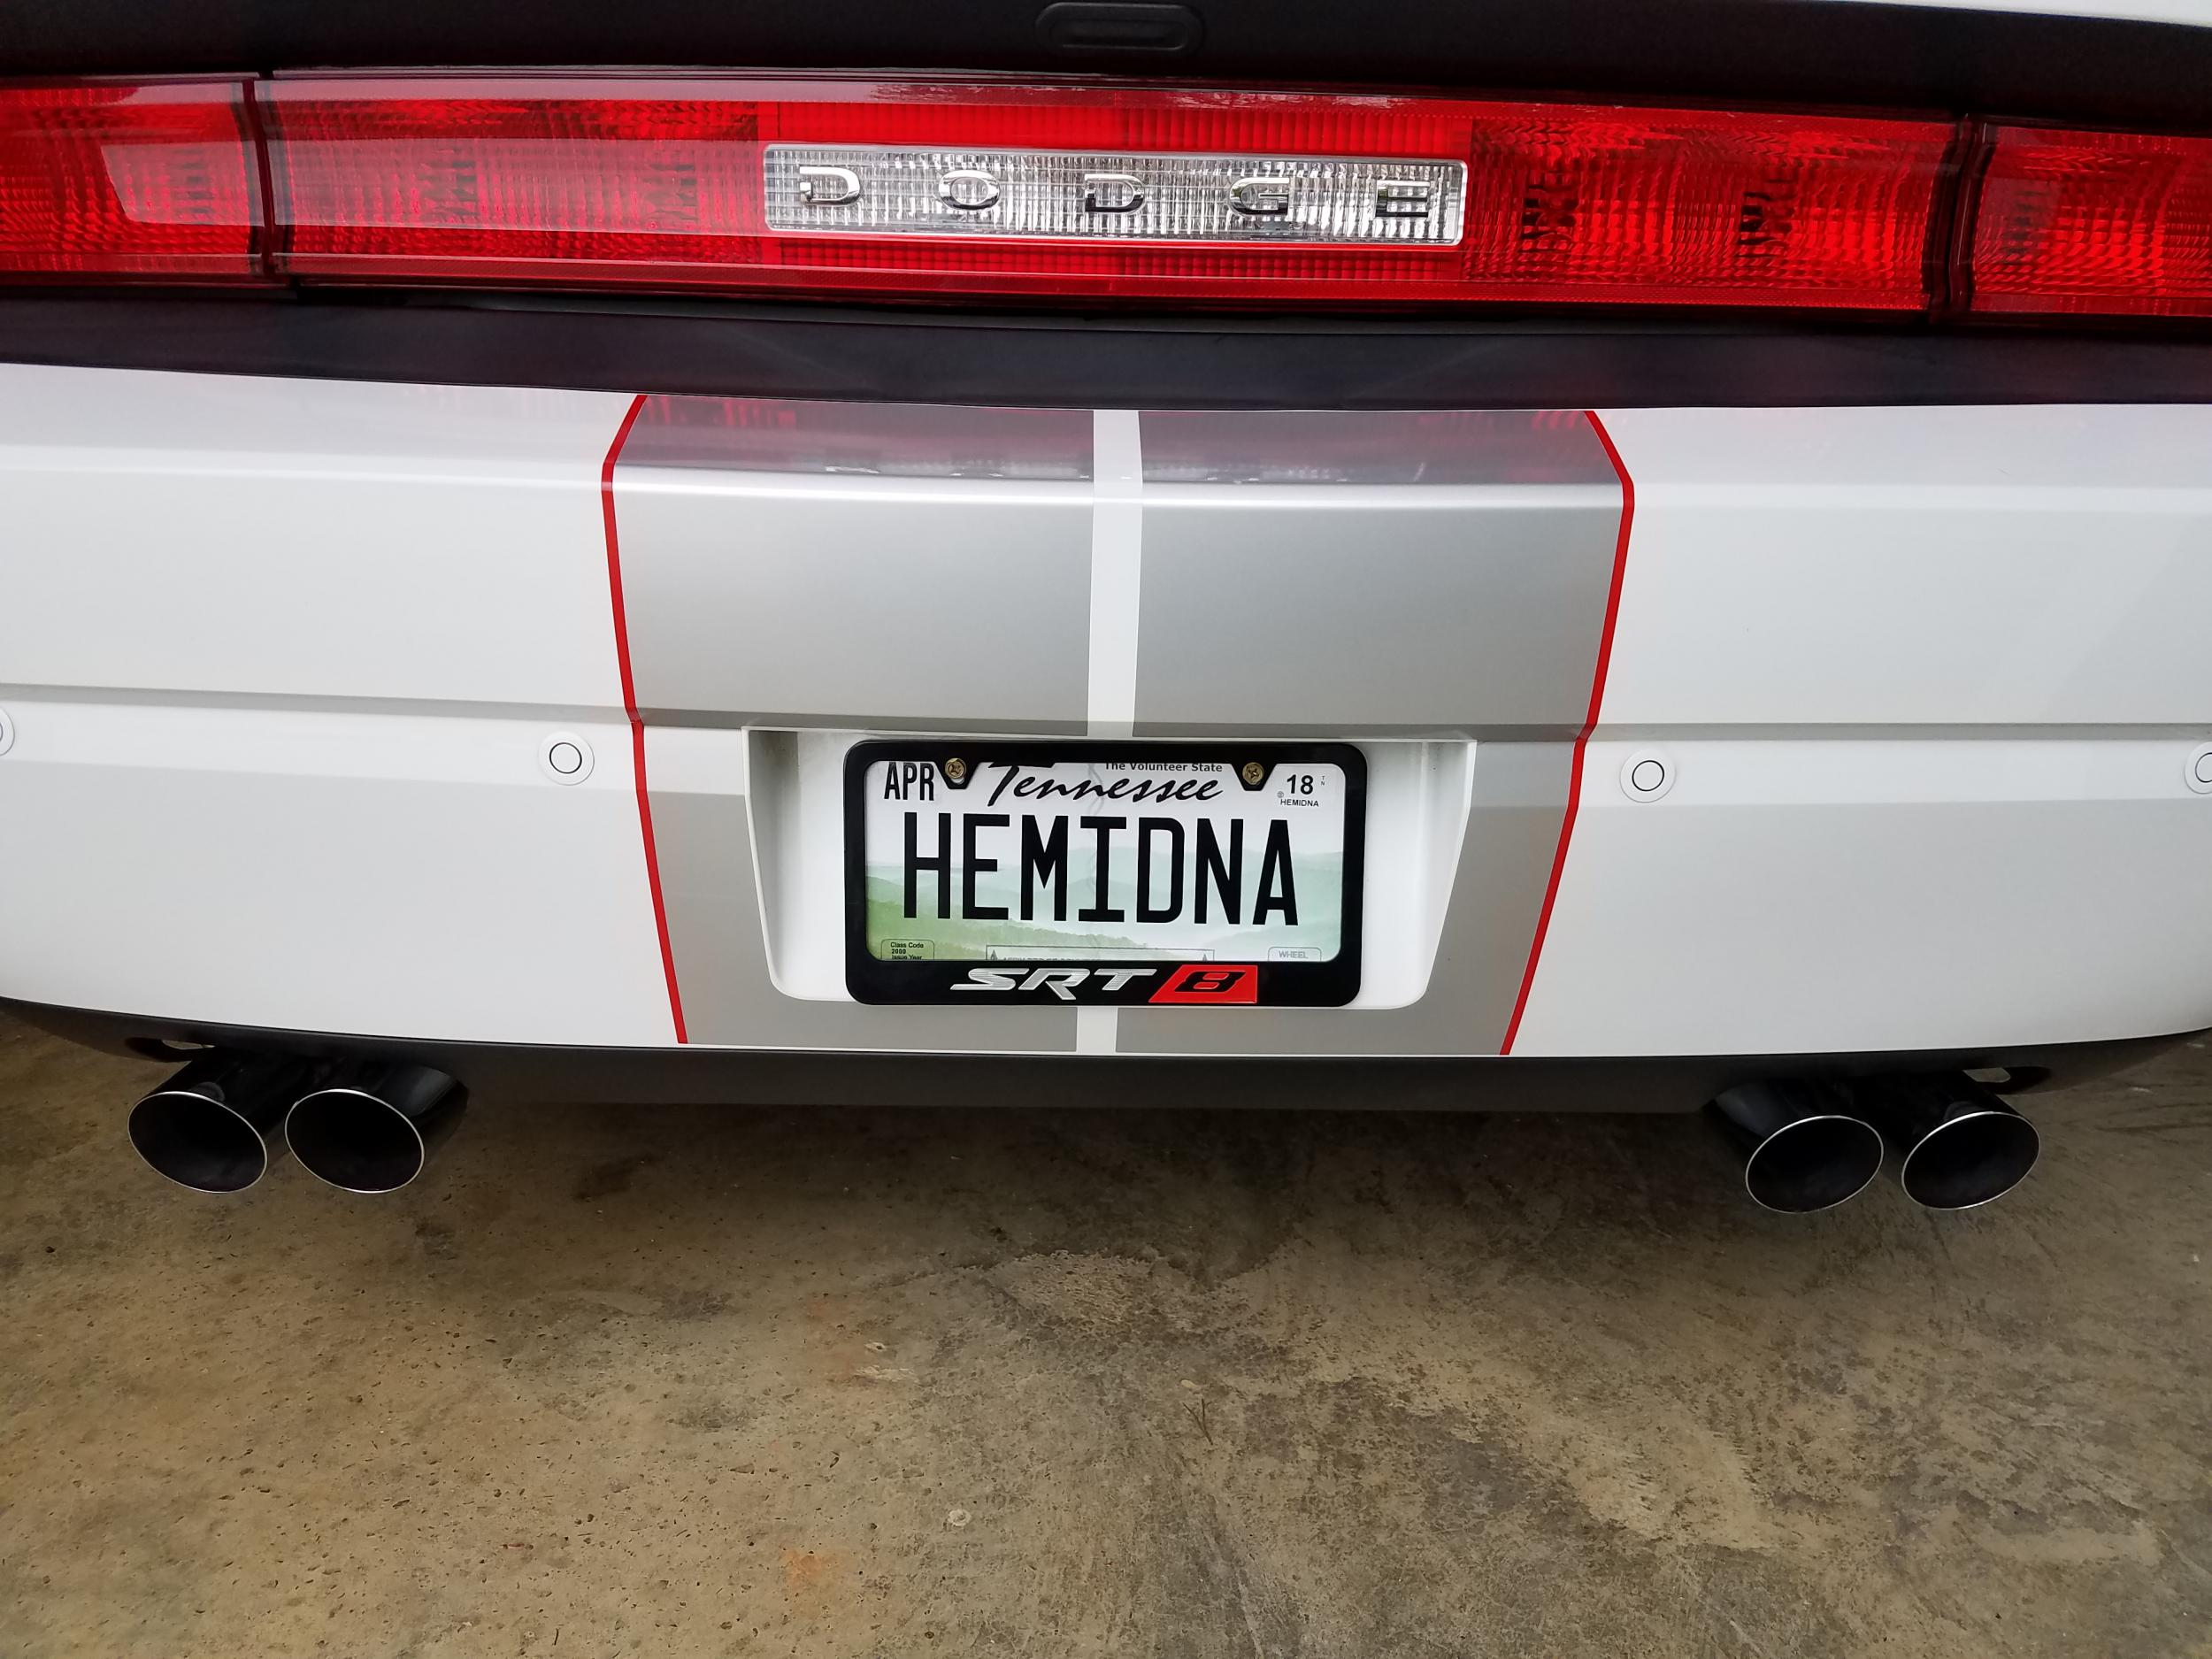 Click image for larger version  Name:hemi IMG_20170418_190531 (002).jpg Views:53 Size:423.4 KB ID:797633